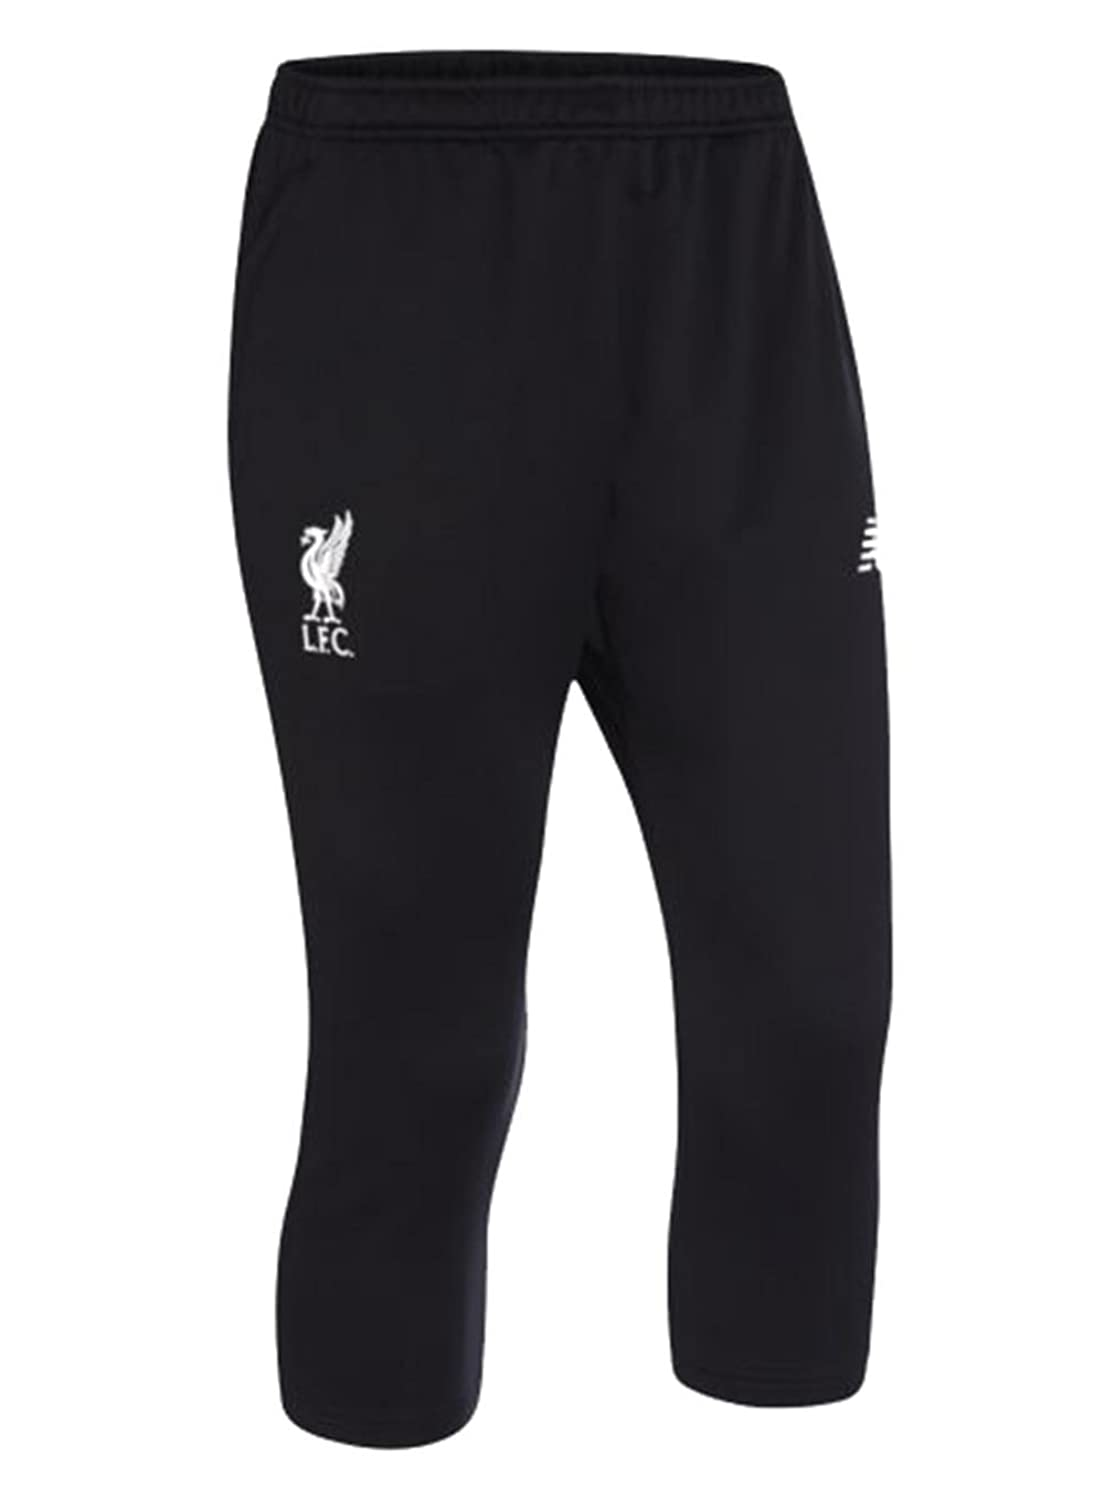 New Balance Liverpool FC Elite Training 3/4 Pant Knitted/サッカーユニフォームリヴァプールFC 3/4 パンツ B01KSASKGMUS Small